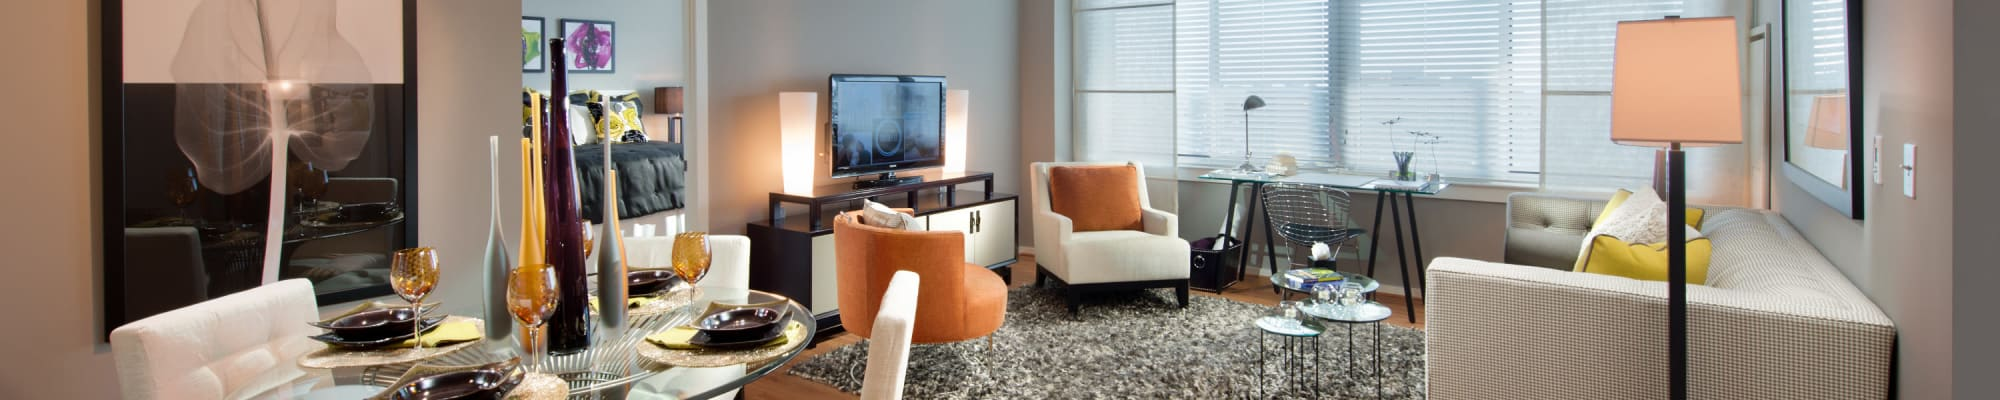 Floor plans at Solaire 1150 Ripley in Silver Spring, Maryland